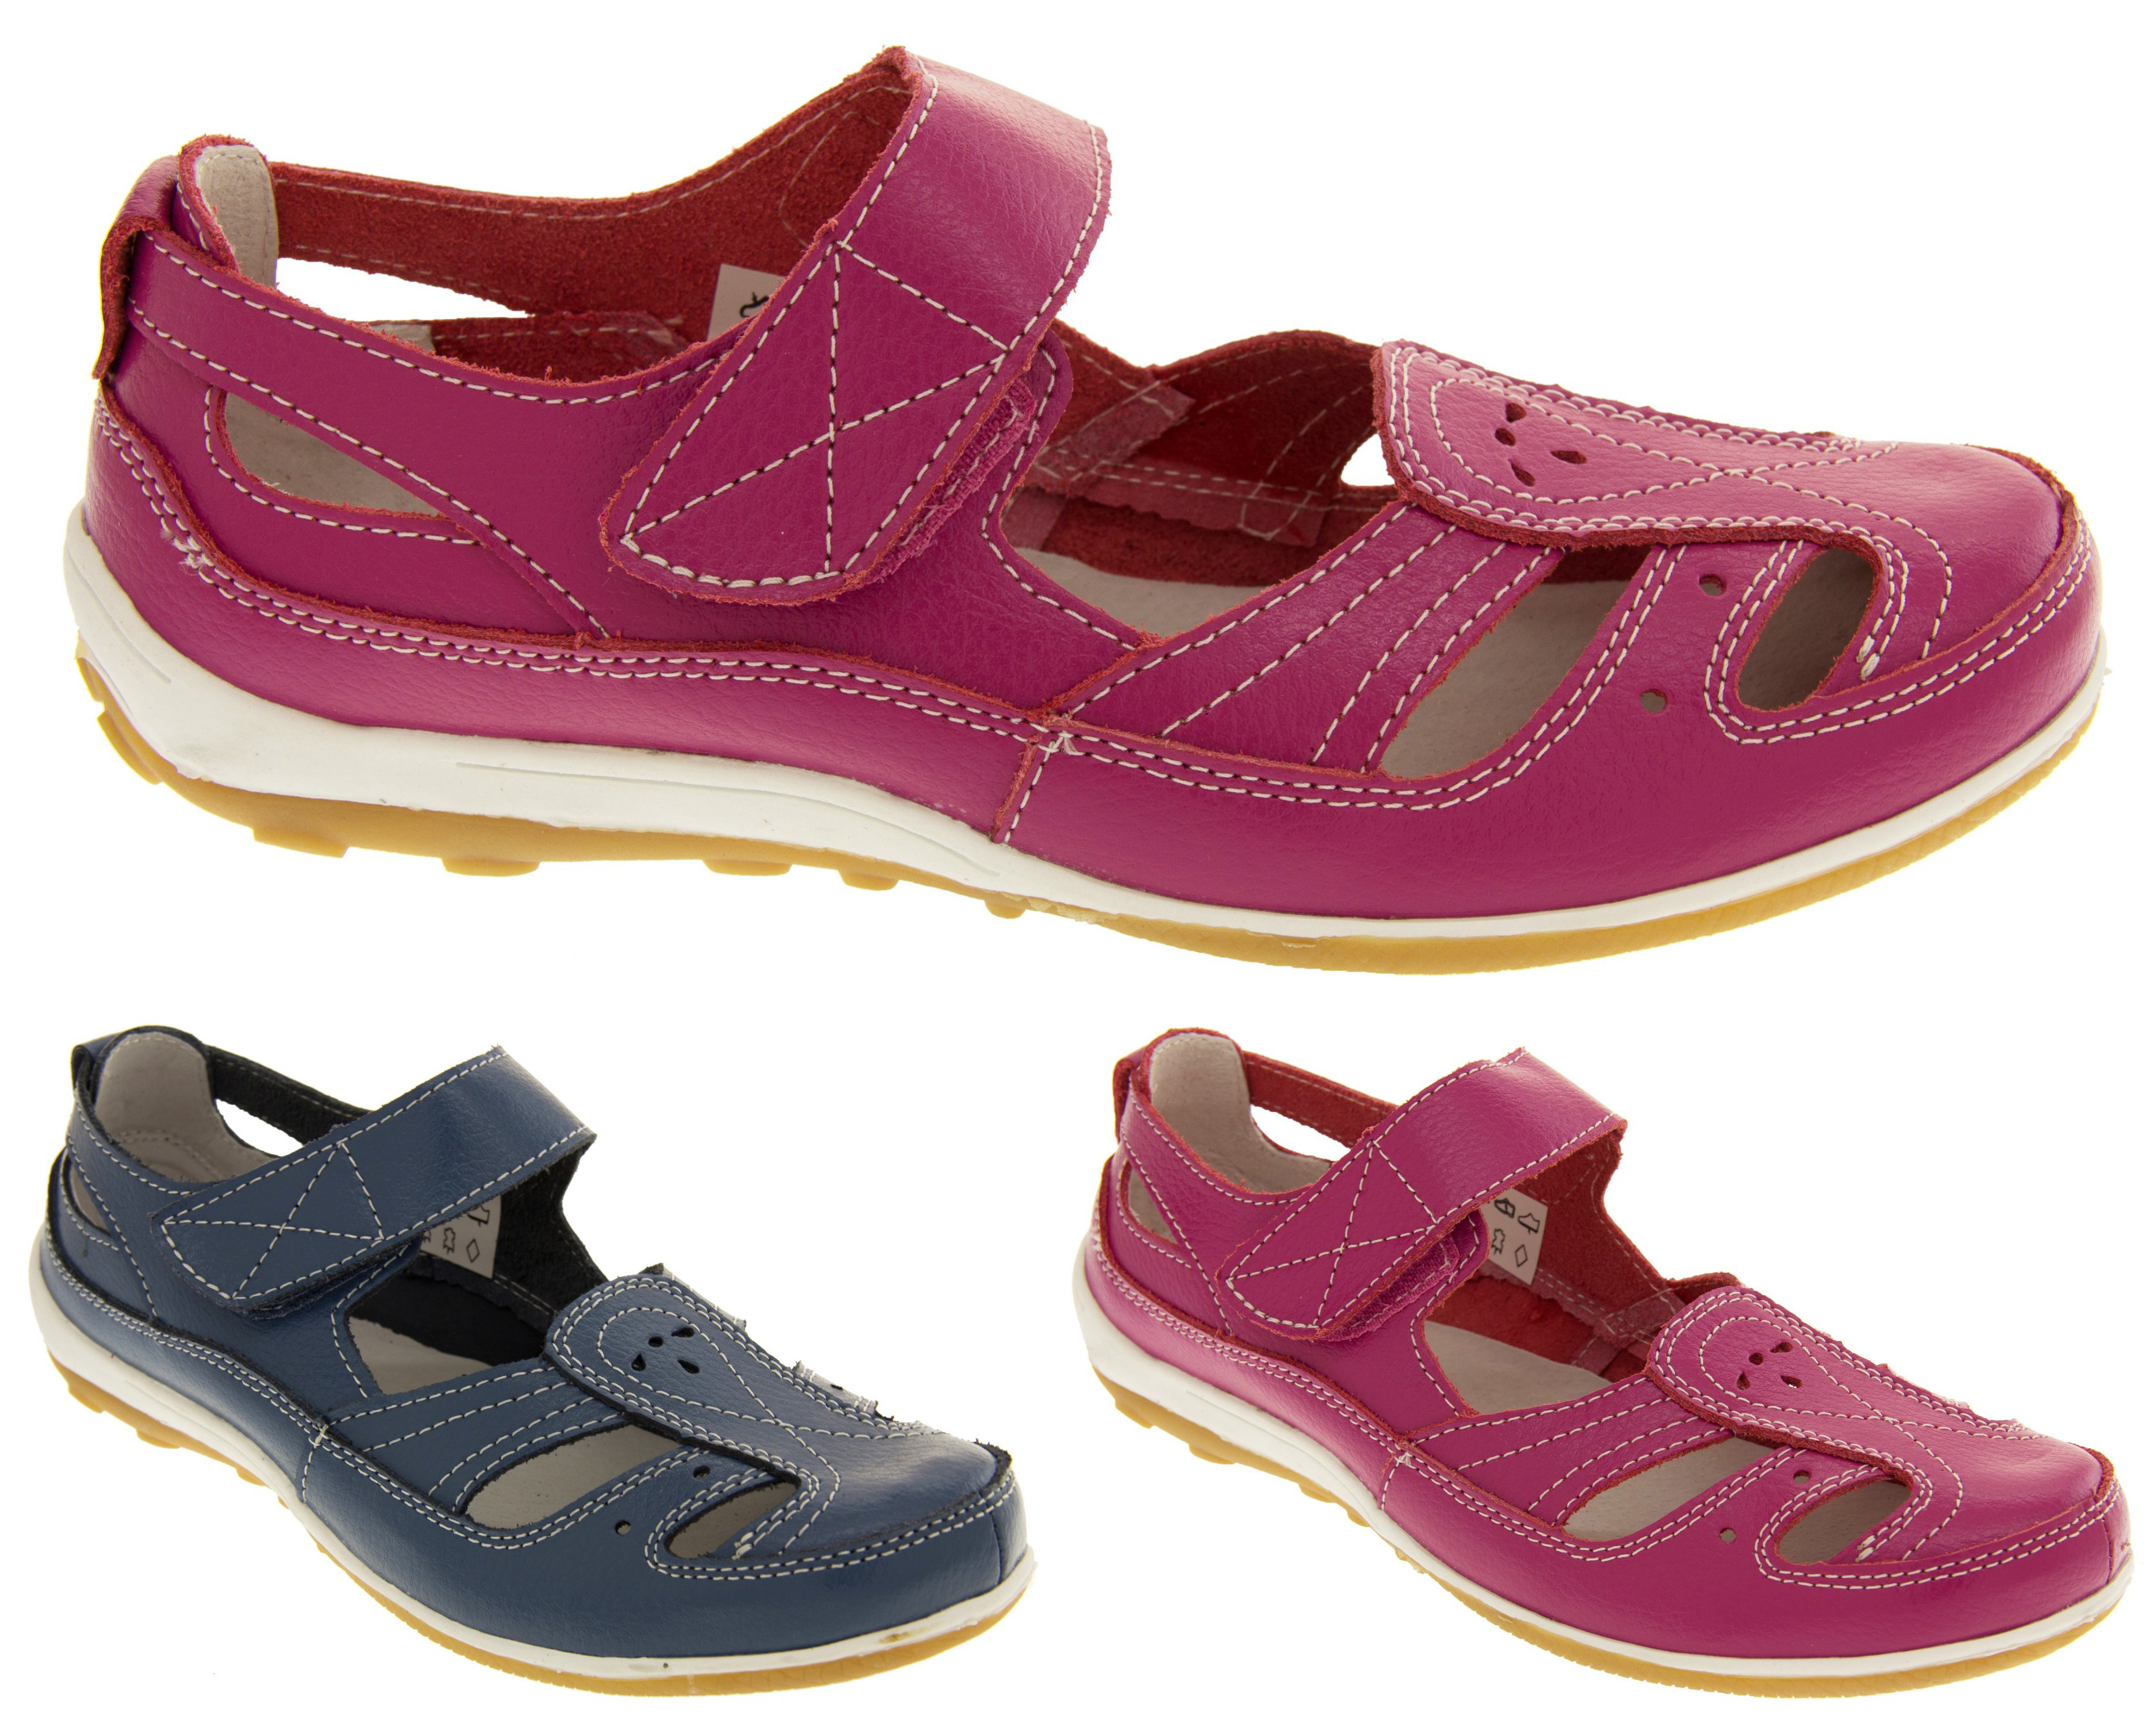 Blueberry Brand Shoes Girls